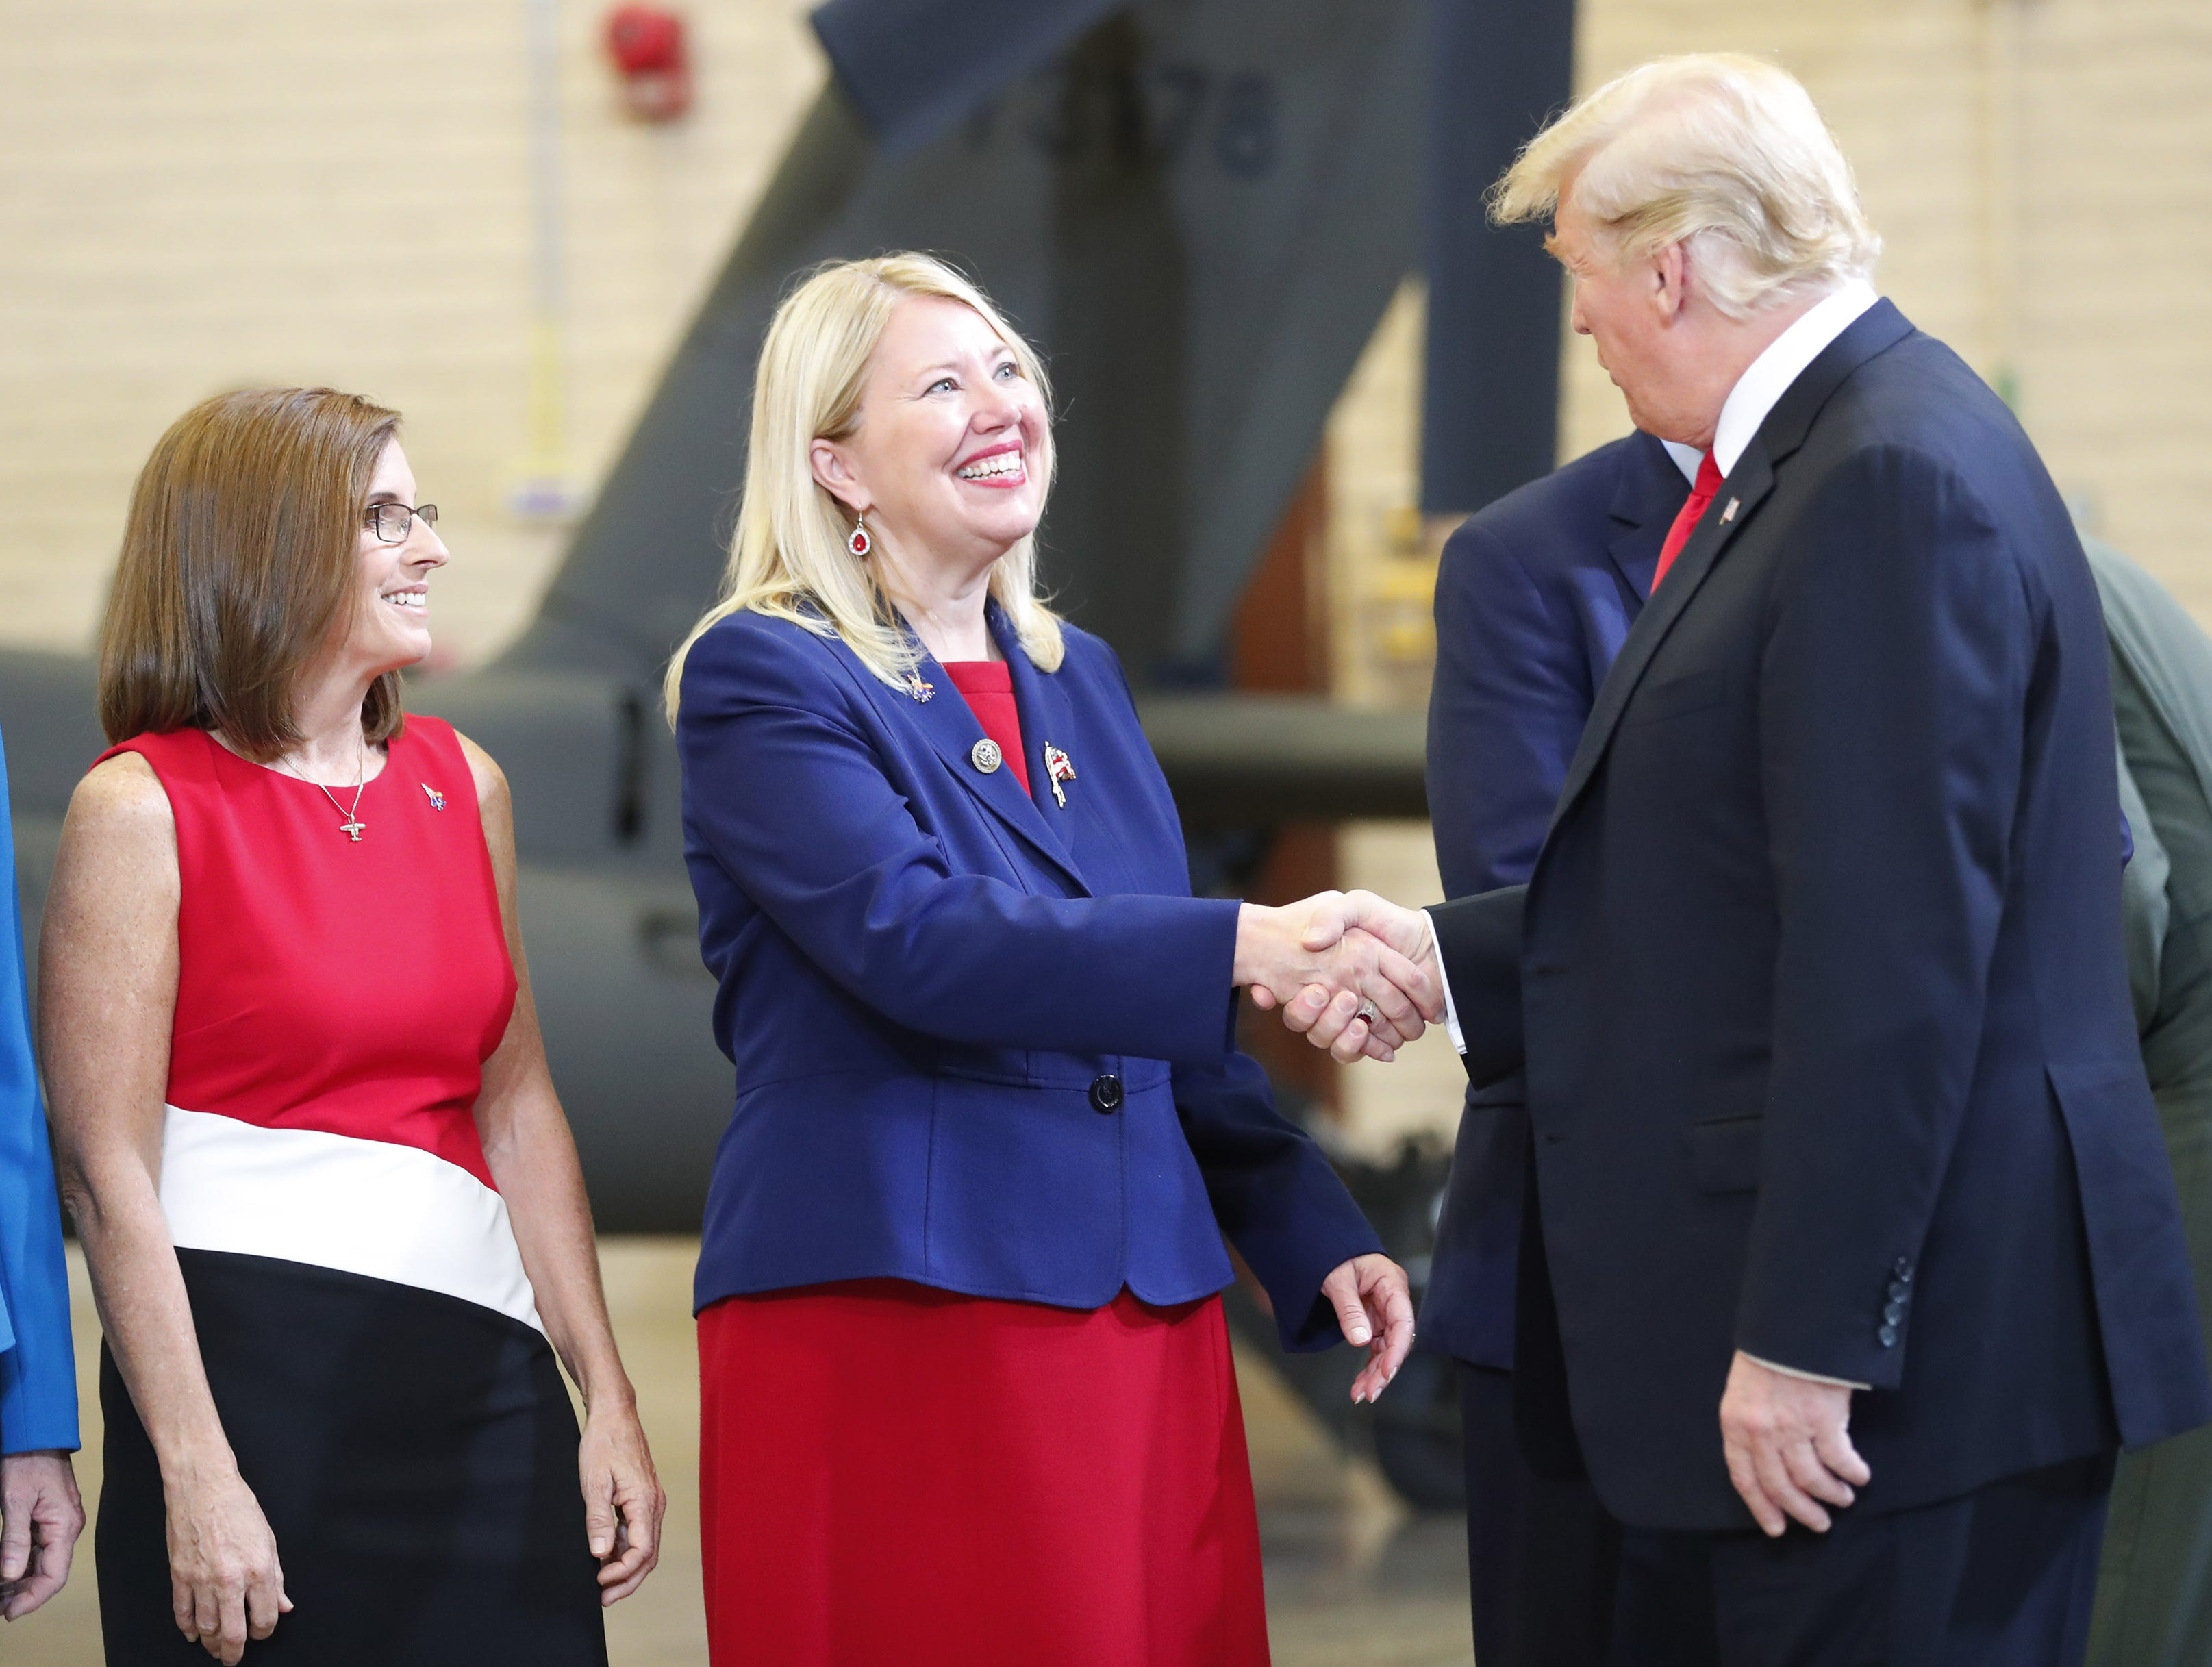 President Trump shakes hands with Rep. Debbie Lesko during a defense capability tour and round-table discussion at Luke Air Force Base in Glendale on Oct. 19, 2018.